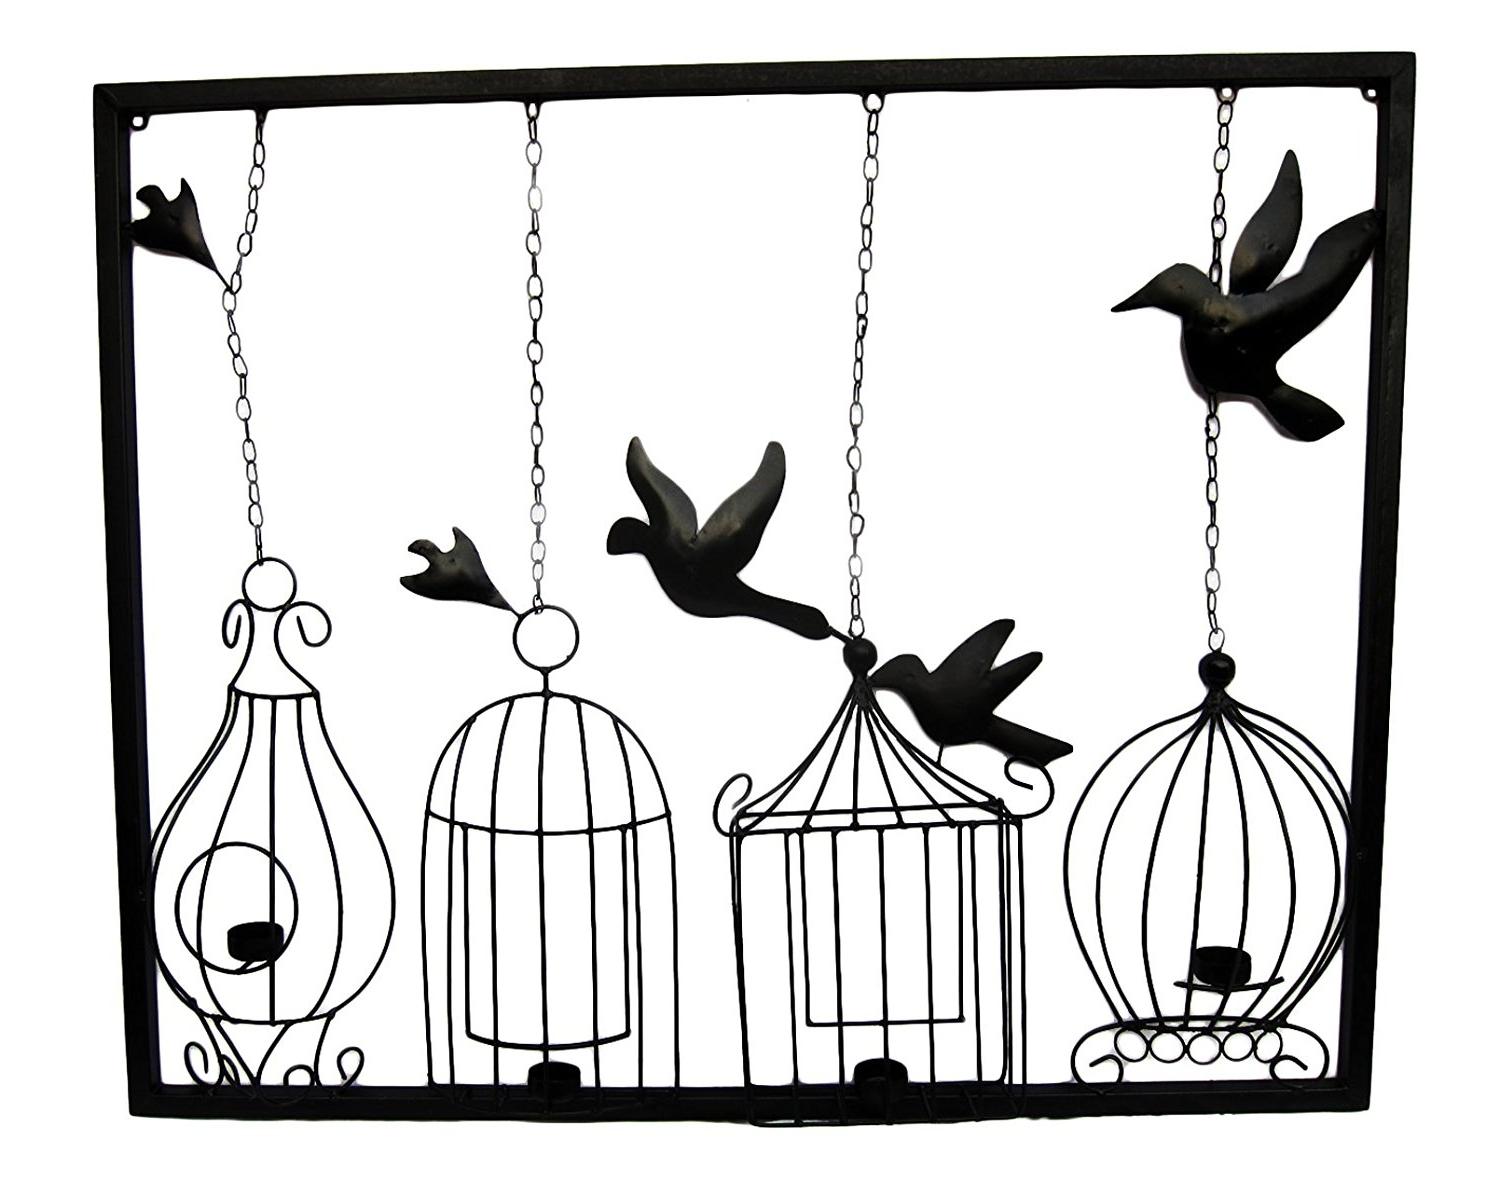 Well Known Metal Birdcage Wall Art Intended For Freelogix Birdcage Tealight Metal Wall Art With Candle Holders (View 13 of 15)